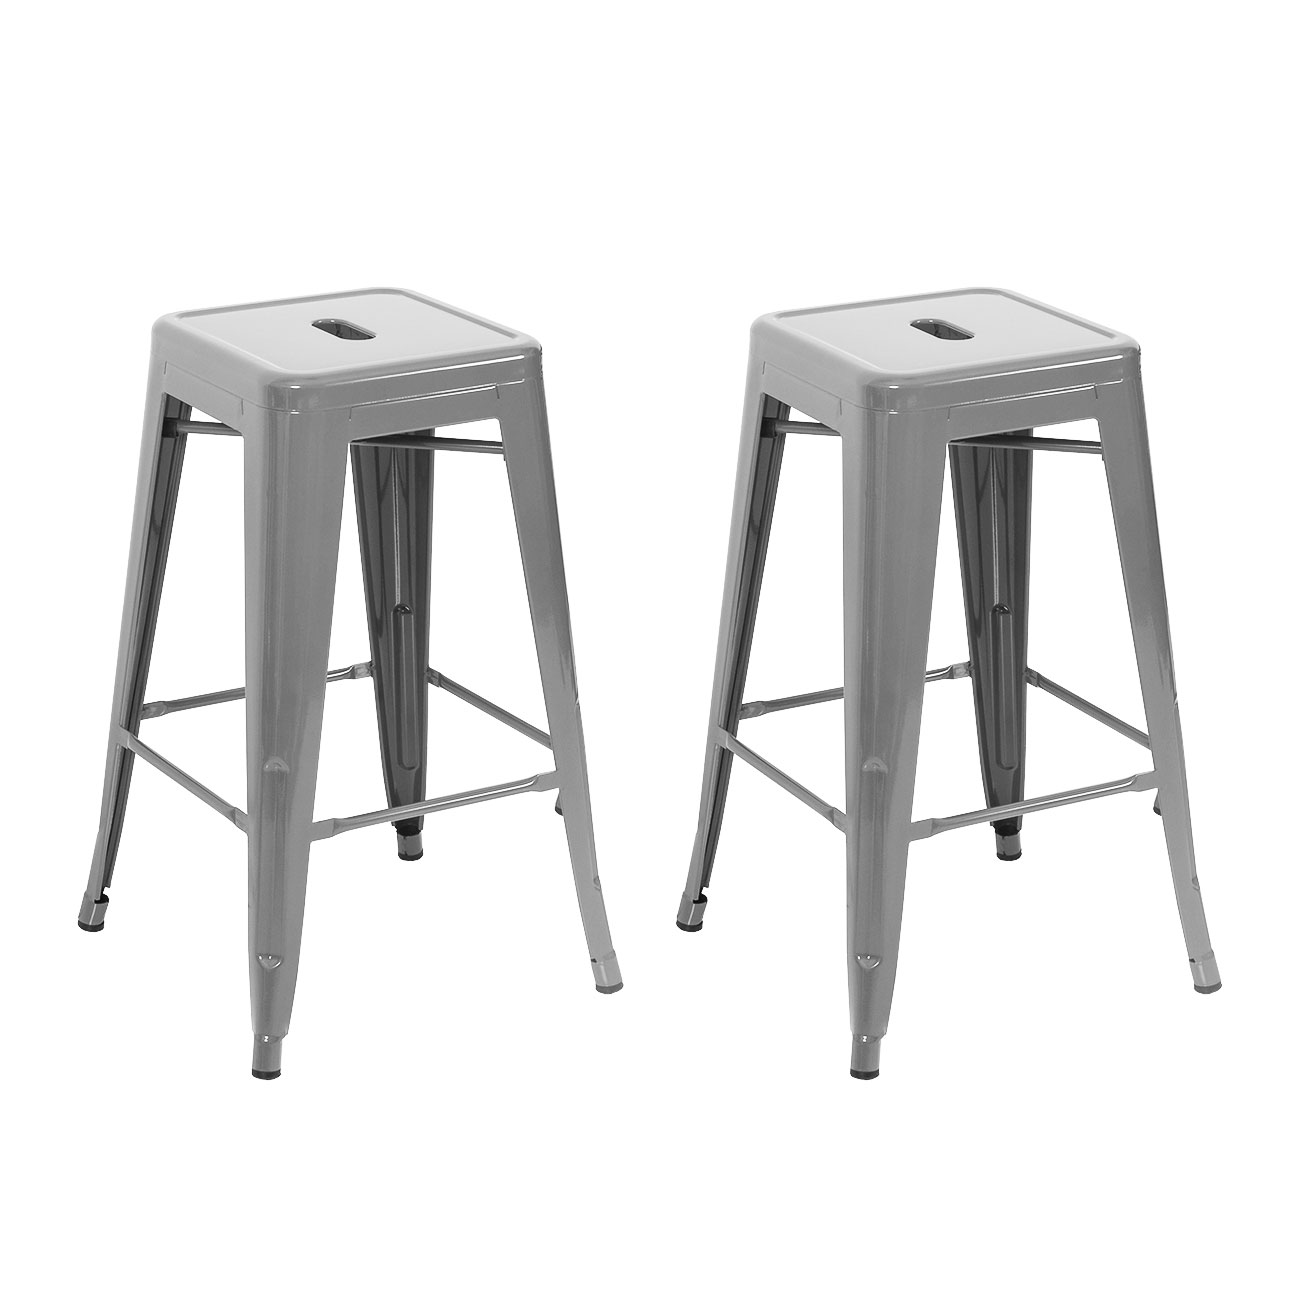 Set of 2 Metal Bar Stool Counter Height Home 24quot 26quot 30  : 014 hg 30024 sl from www.ebay.com size 1300 x 1300 jpeg 92kB